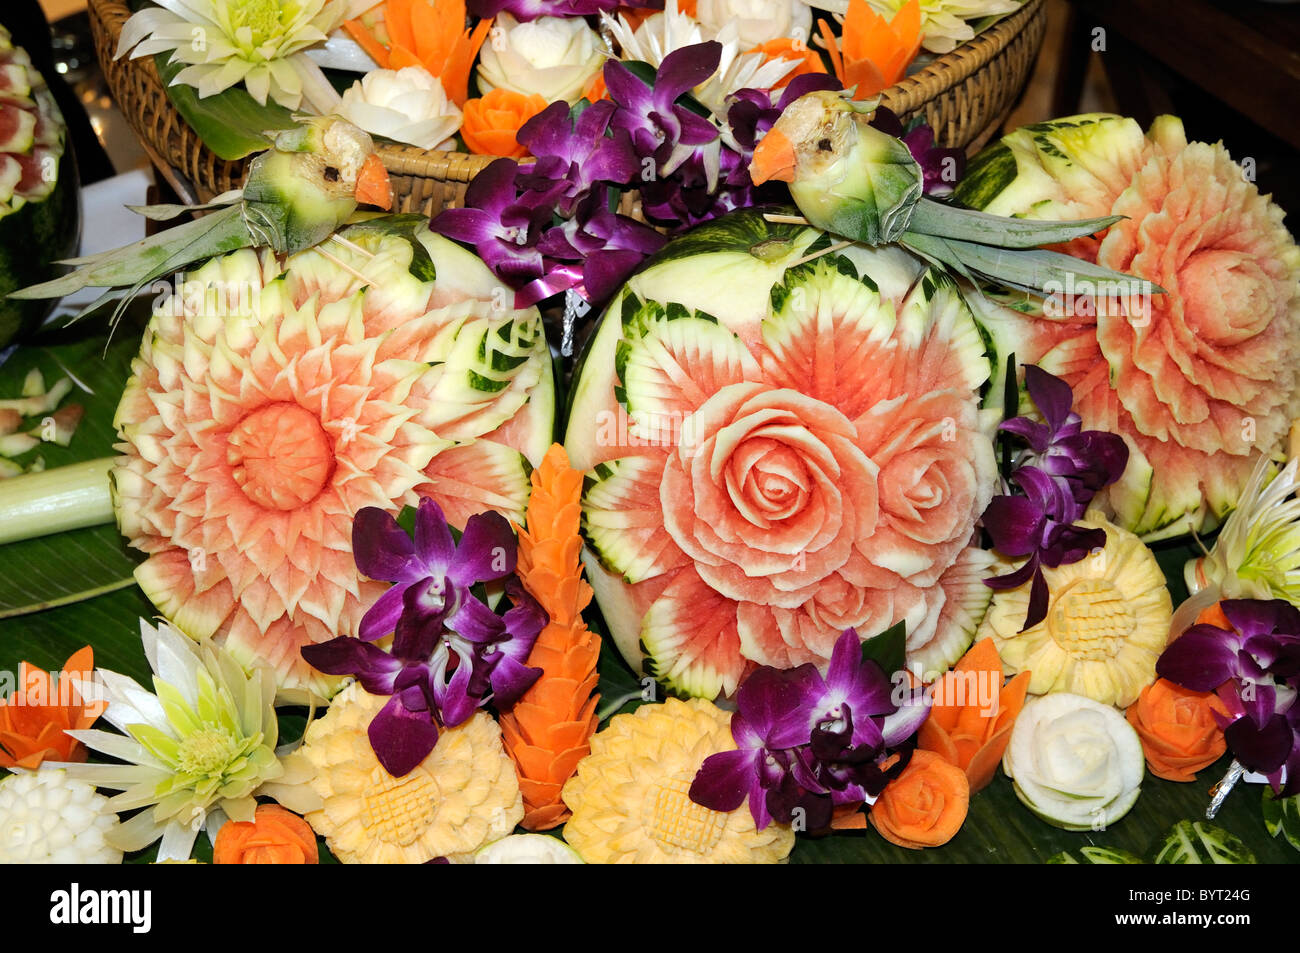 Flower Arrangement Carved From Fresh Fruit And Vegetables Including A Bird Made Pineapple